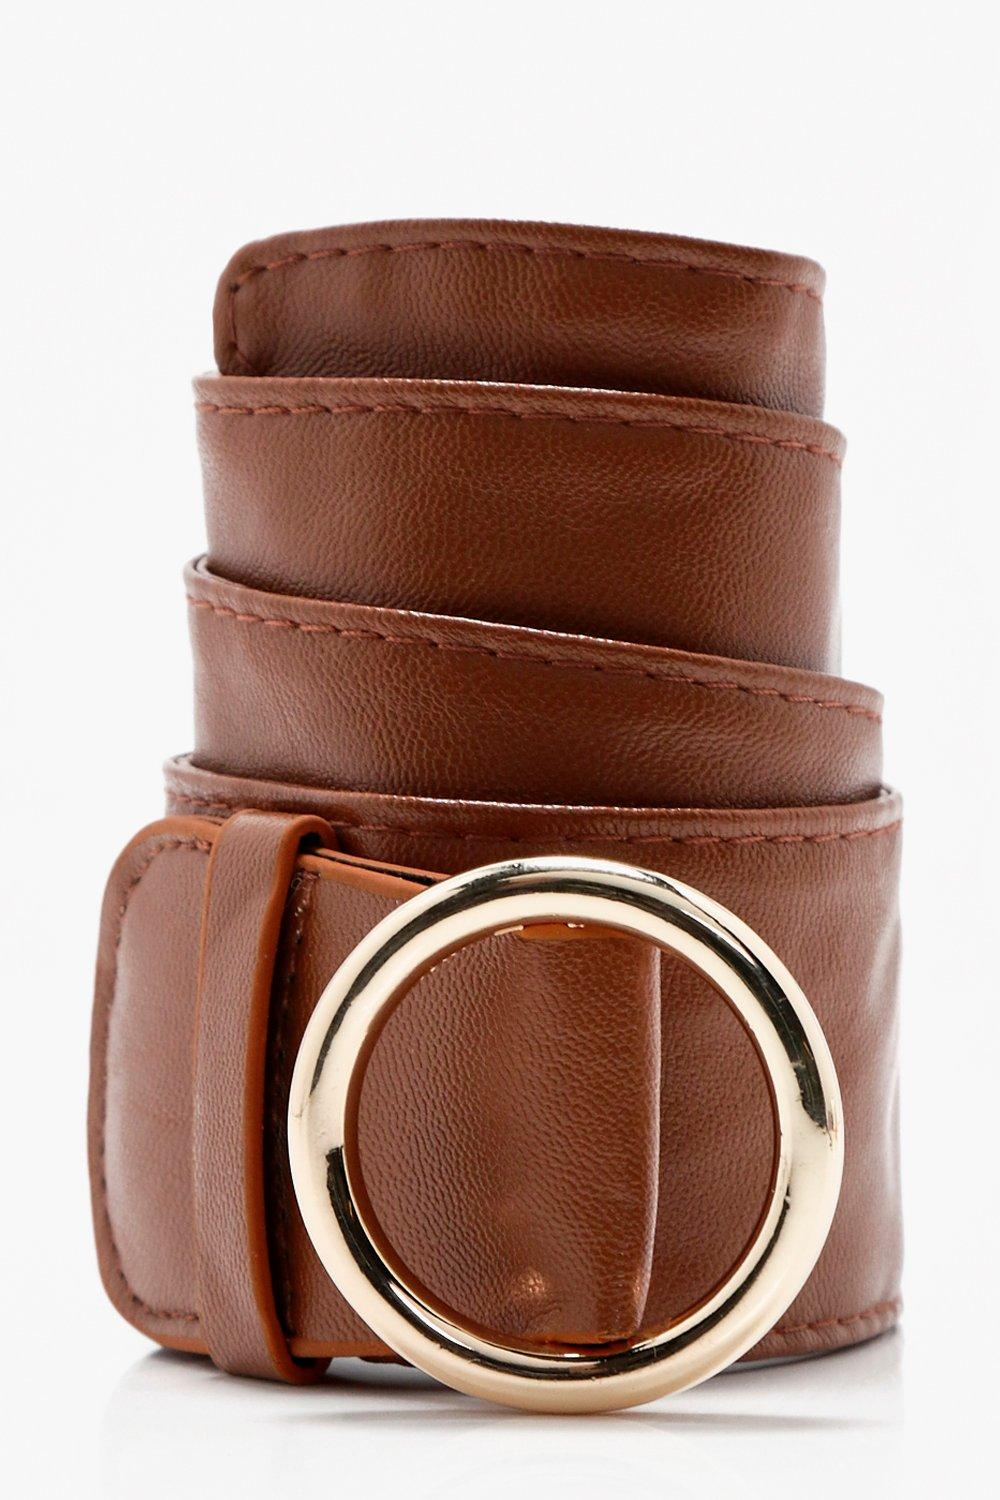 Circle Buckle Loop Through Belt - tan - Lucy Circl